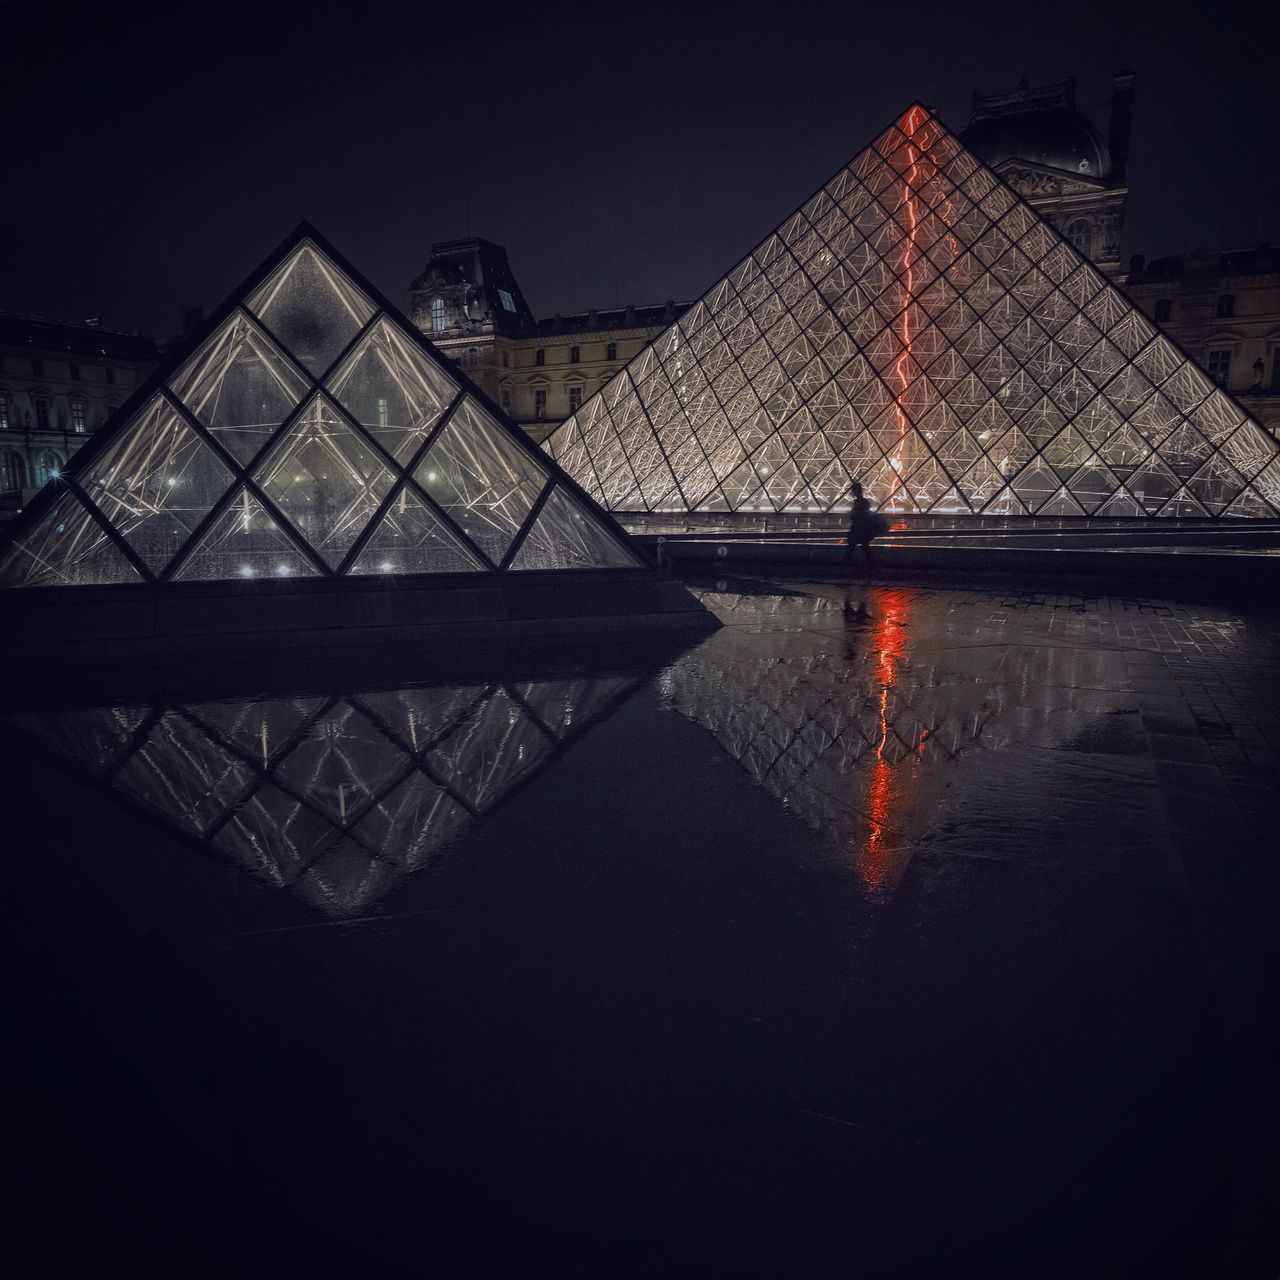 Louvre Pyramid Louvremuseum Louvre Paris Reflection Puddle Reflections Nightphotography Night Lights Architecture